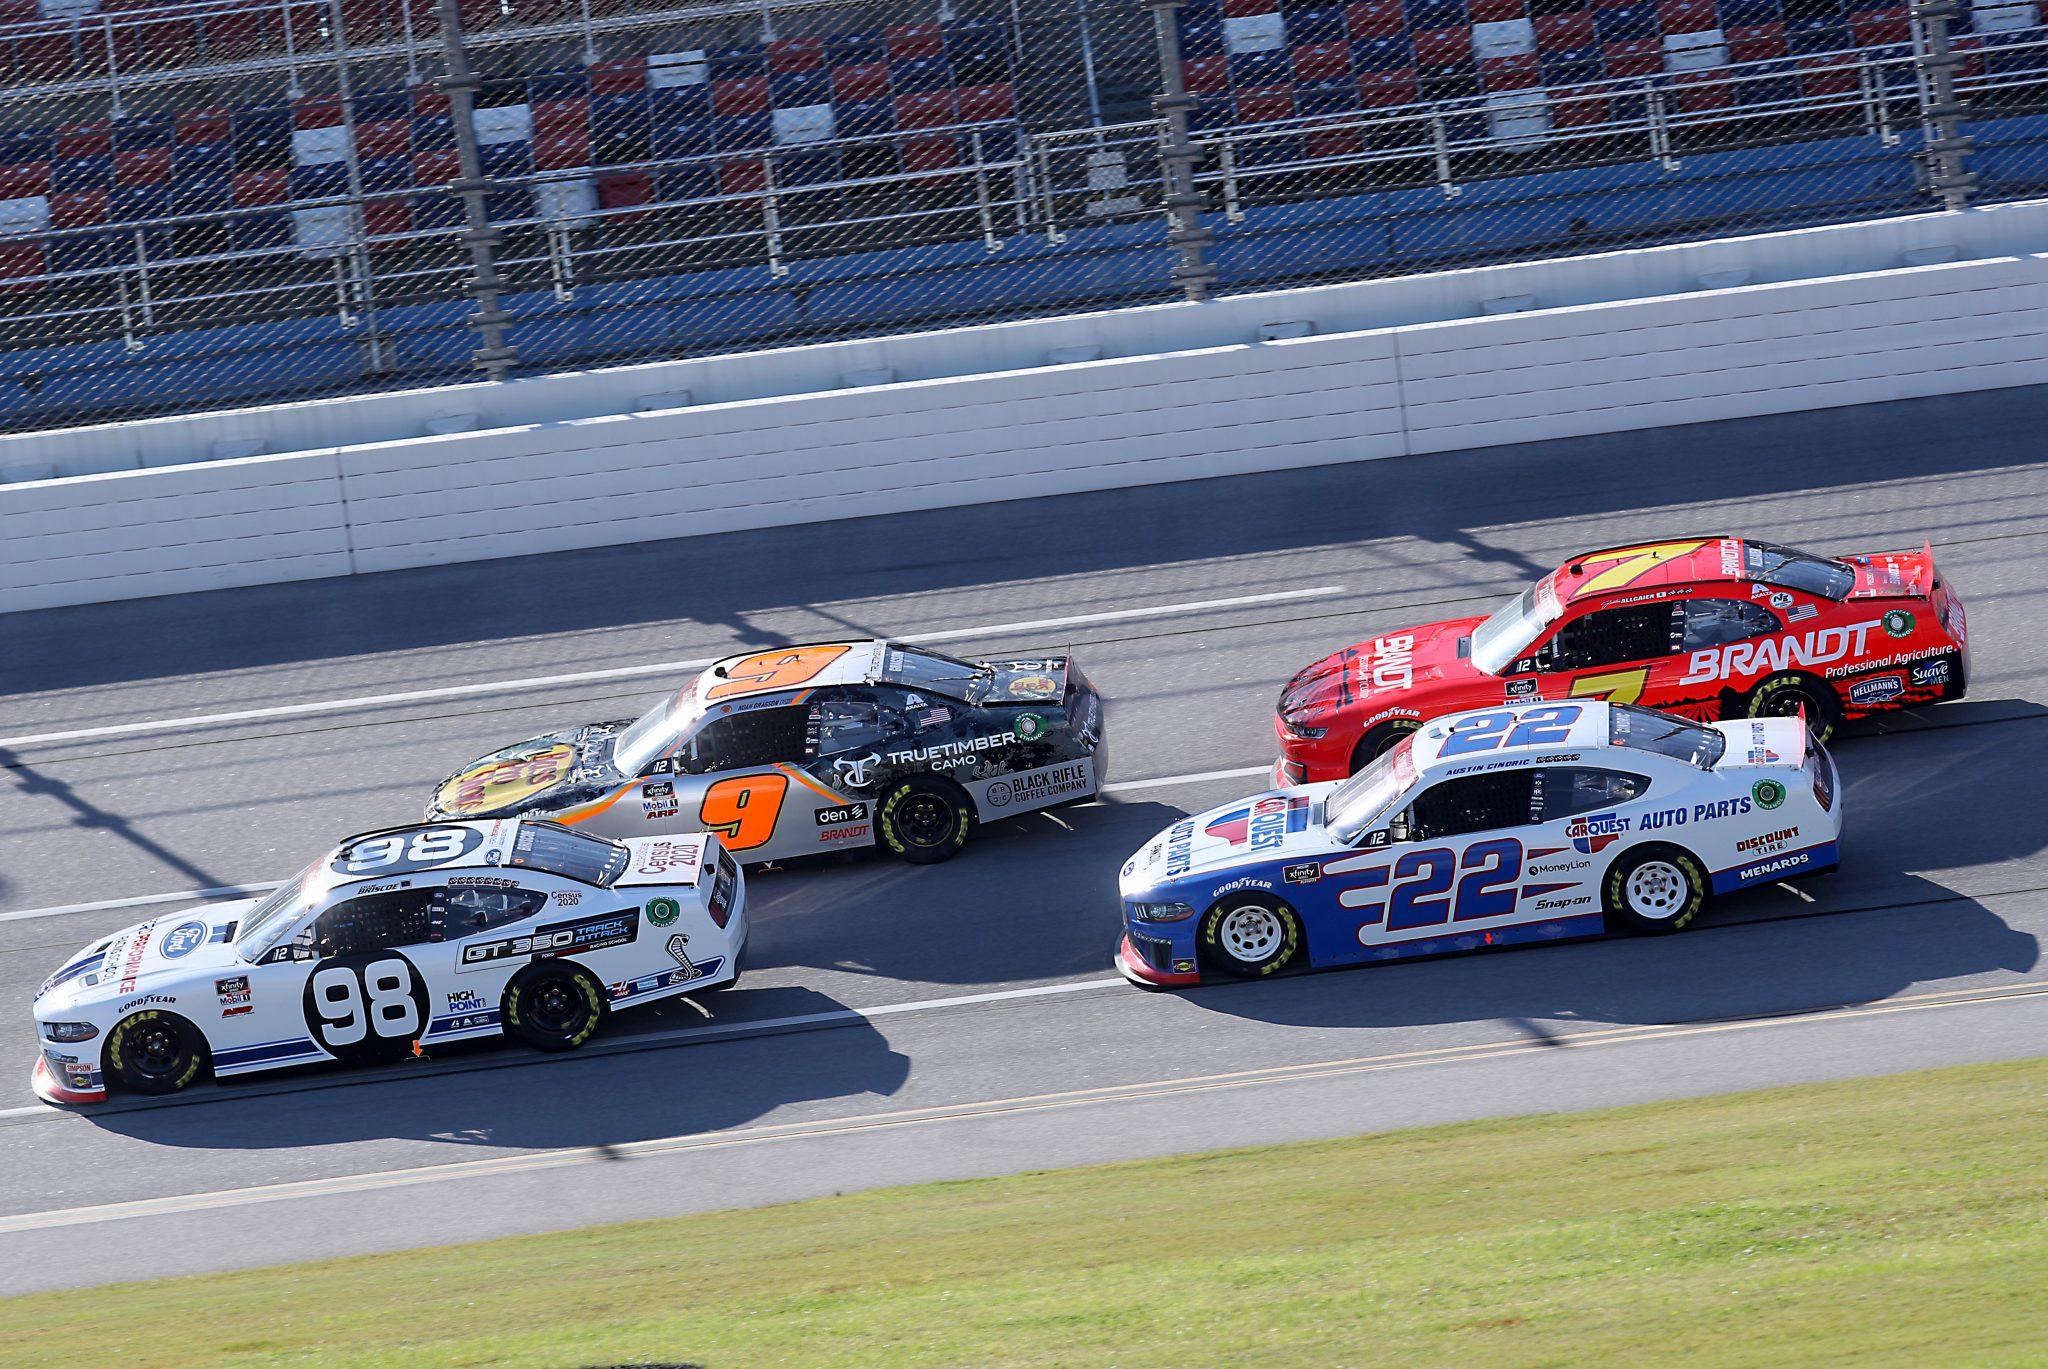 TALLADEGA, ALABAMA - OCTOBER 03: Chase Briscoe, driver of the #98 Ford Performance Racing School Ford, Noah Gragson, driver of the #9 Bass Pro Shops/TrueTimber Camo Chevrolet, Austin Cindric, driver of the #22 Ford, and Justin Allgaier, driver of the #7 BRANDT Chevrolet, race during the NASCAR Xfinity Series Ag-Pro 300 at Talladega Superspeedway on October 03, 2020 in Talladega, Alabama. (Photo by Chris Graythen/Getty Images) | Getty Images